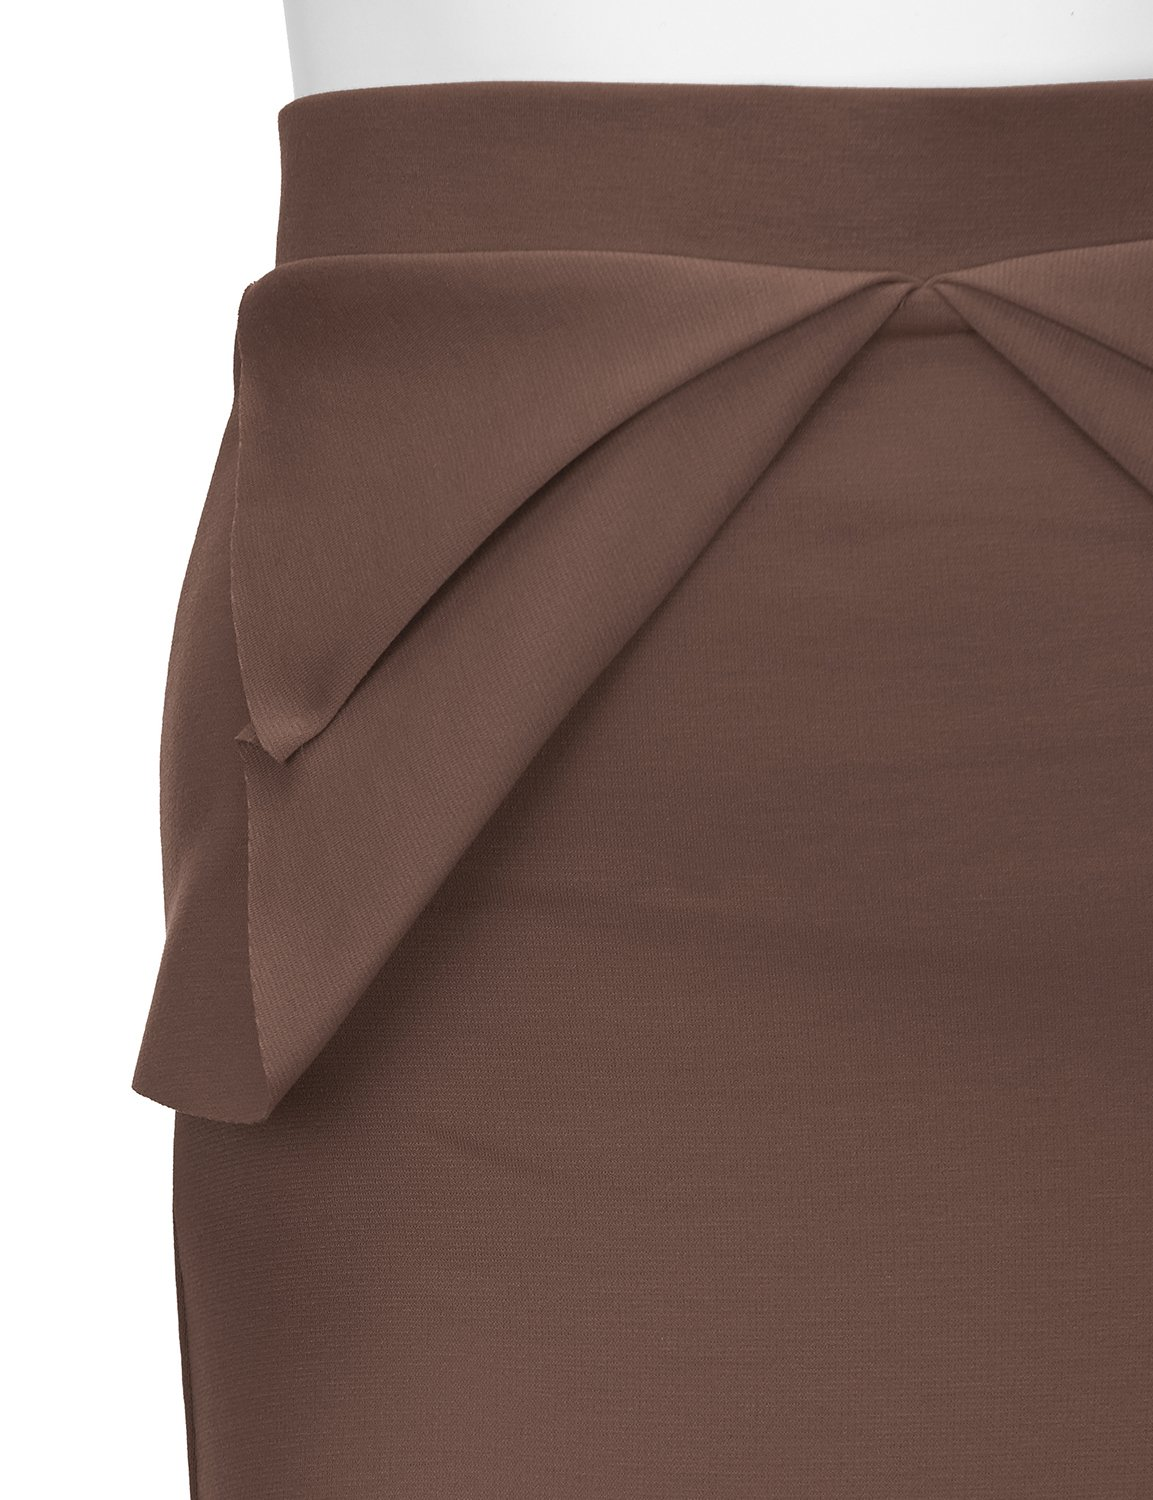 Regna X Womens high Waist Elastic Band Sexy Knee Length Skirts Brown XL by Regna X (Image #6)